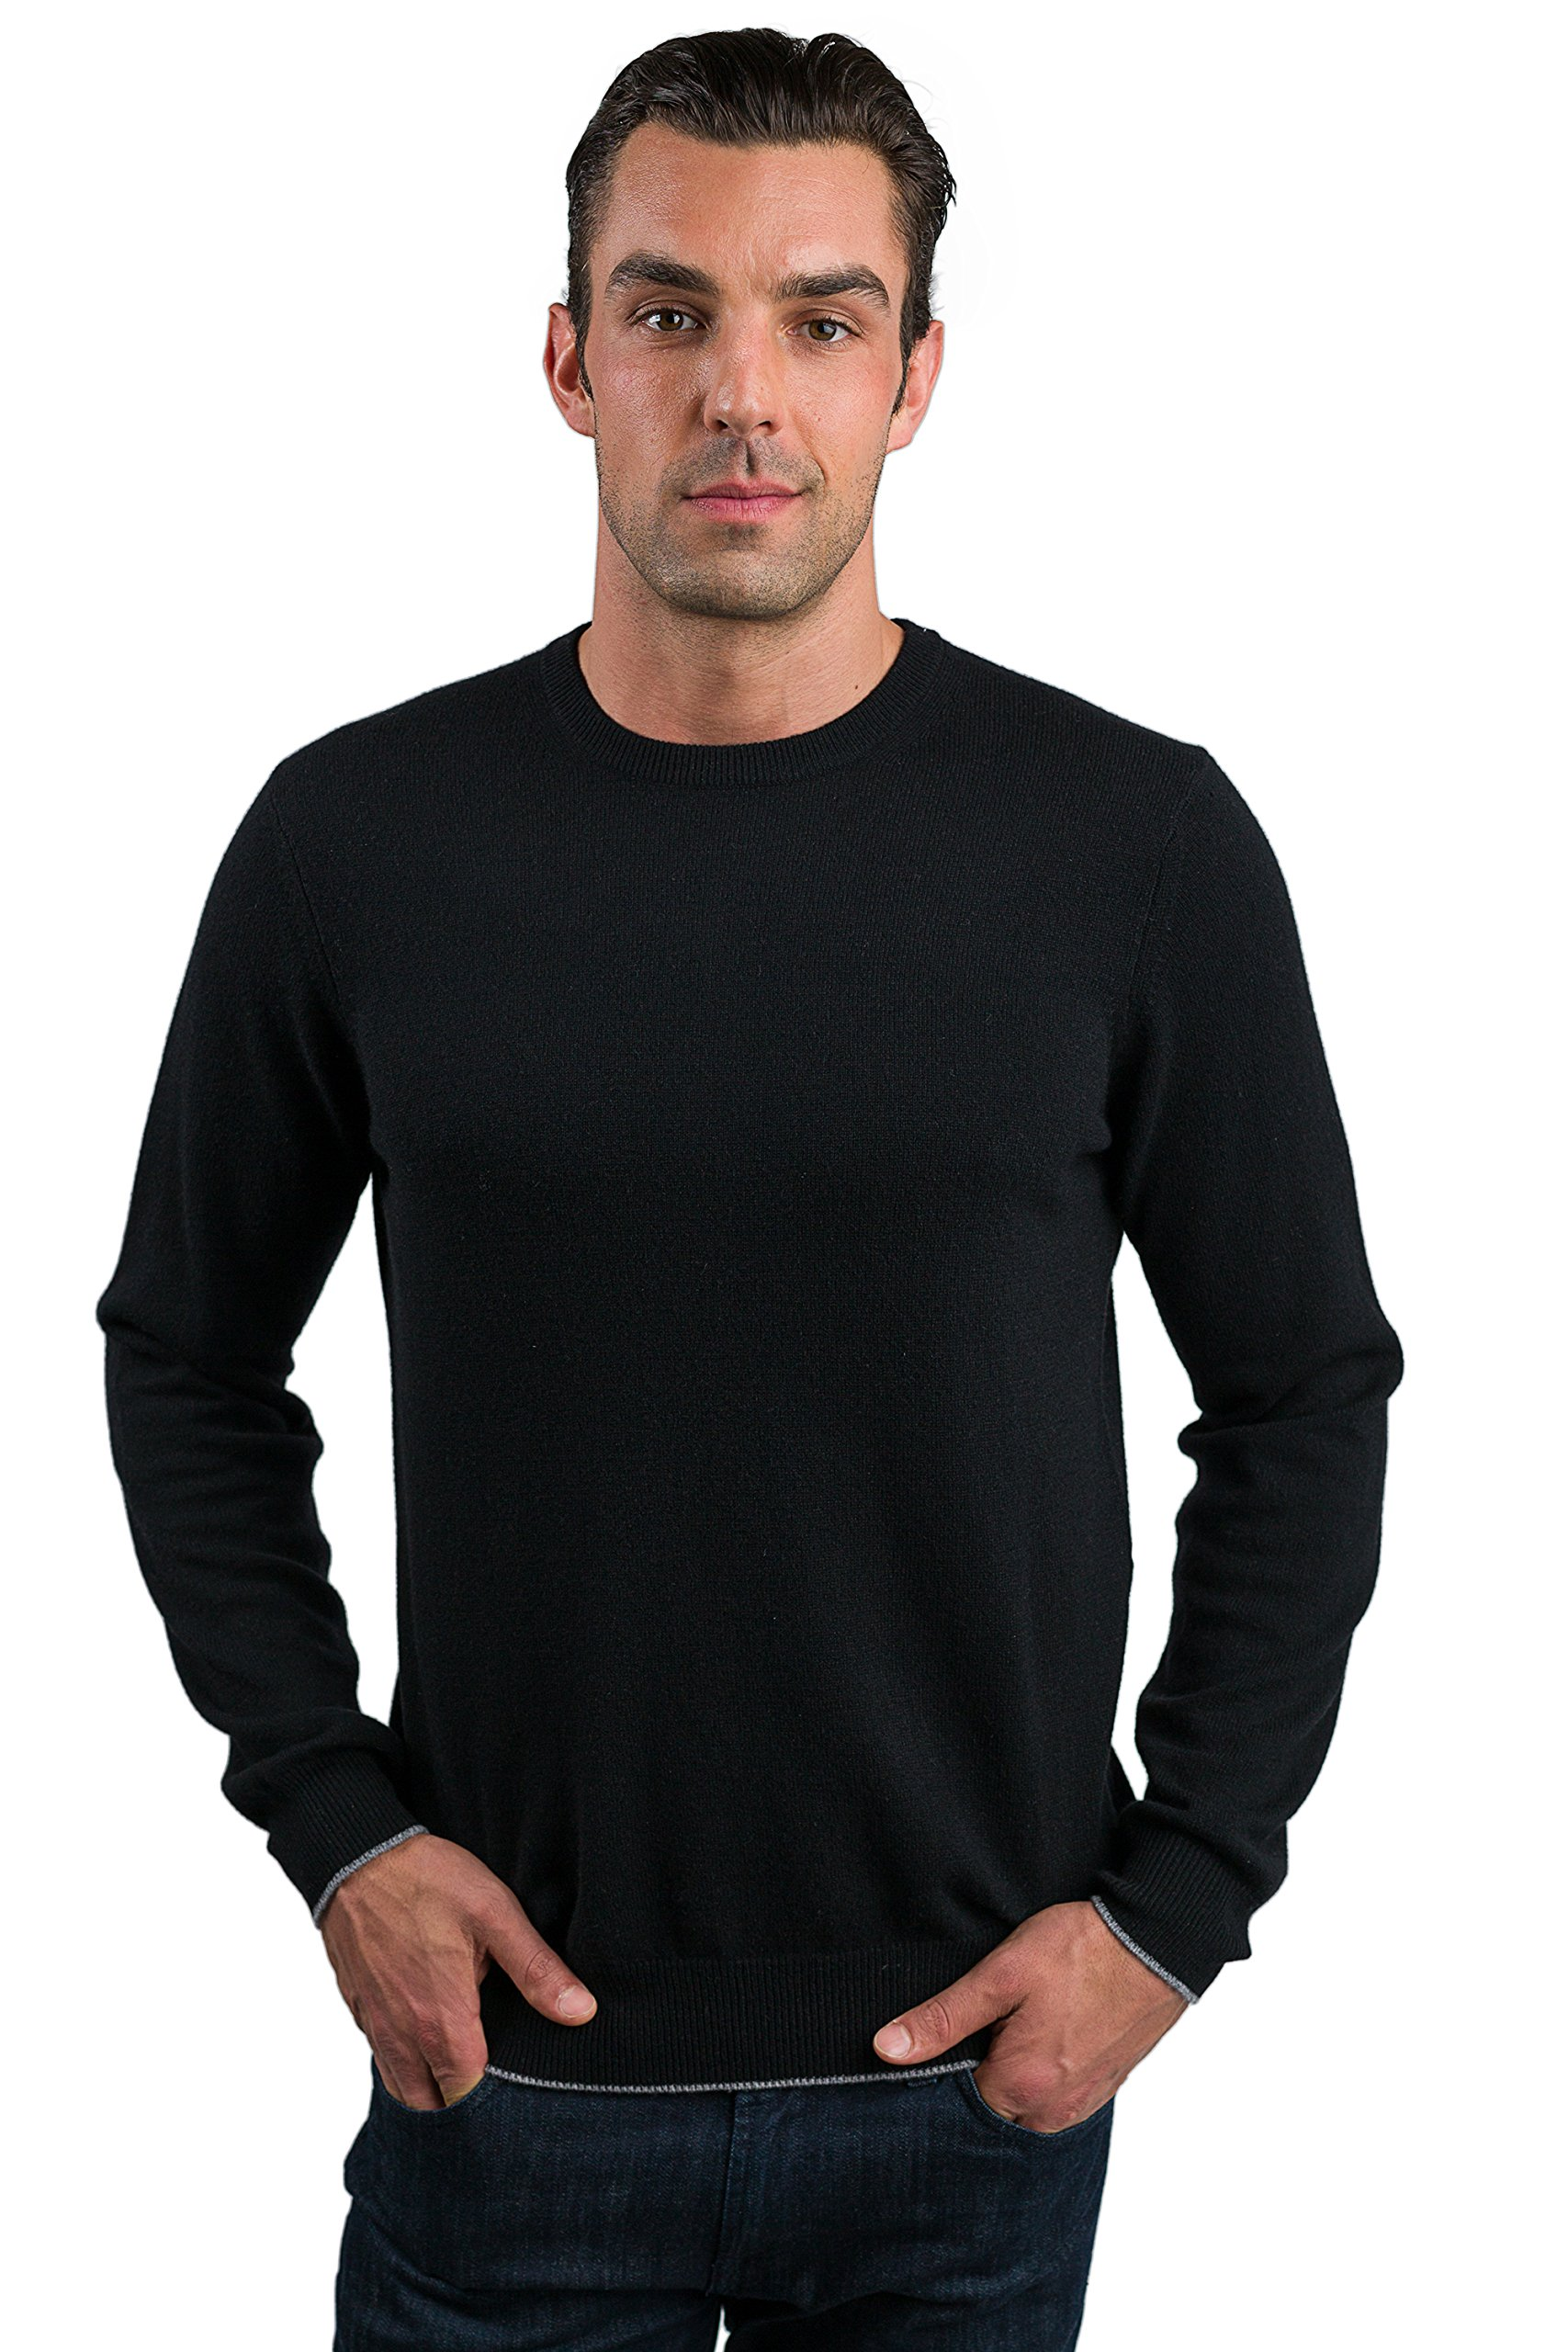 JENNIE LIU Men's 100% Cashmere Long Sleeve Crewneck Sweater (Large, Black) by JENNIE LIU